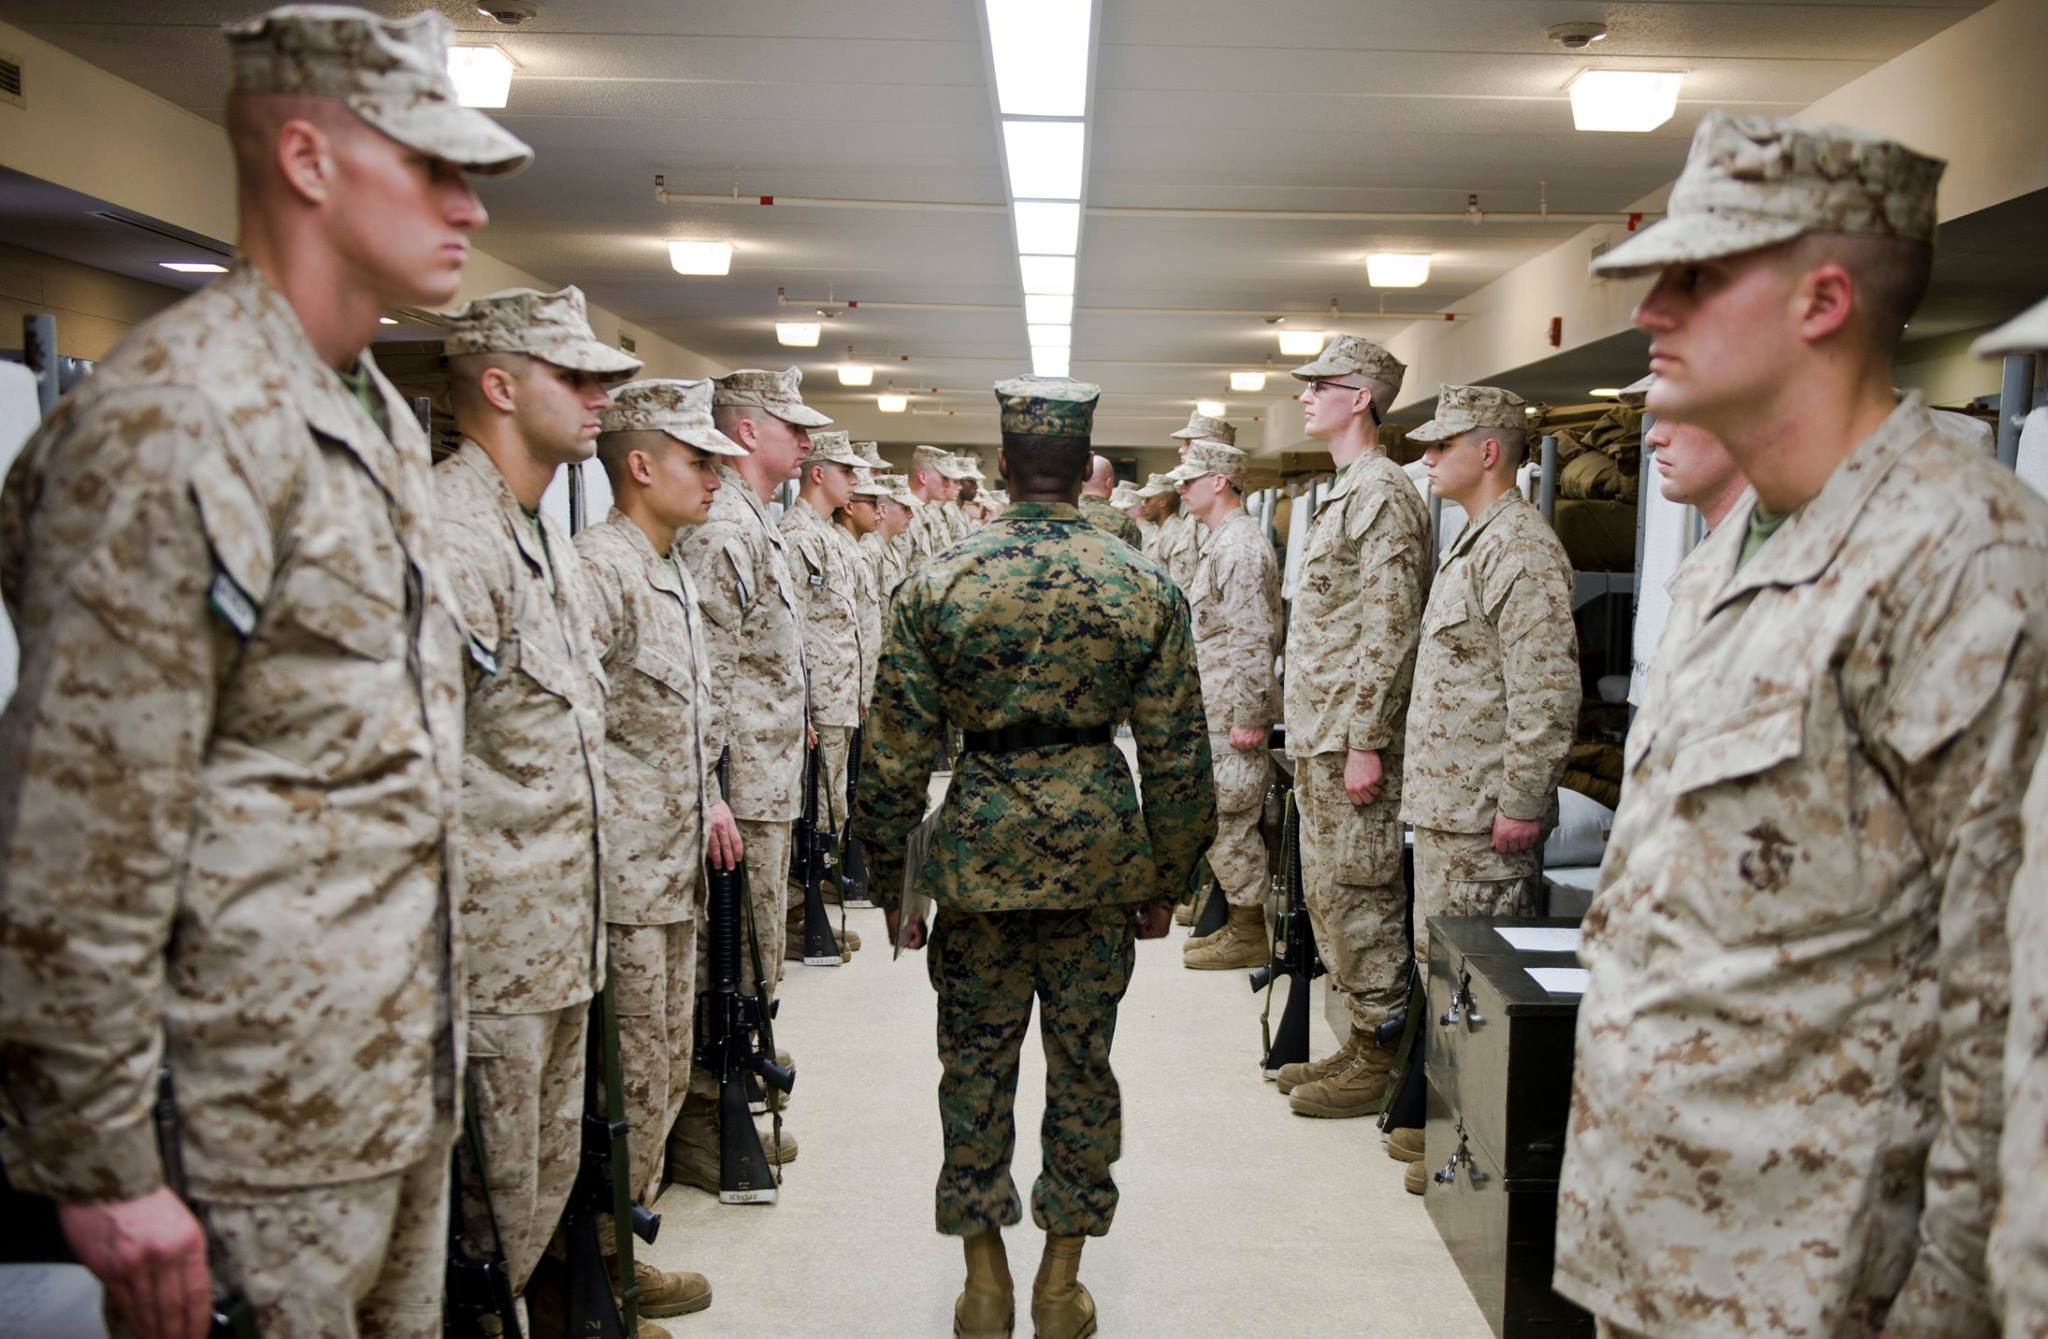 Receiving mail at marine ocs what you need to know - Officer training school marines ...